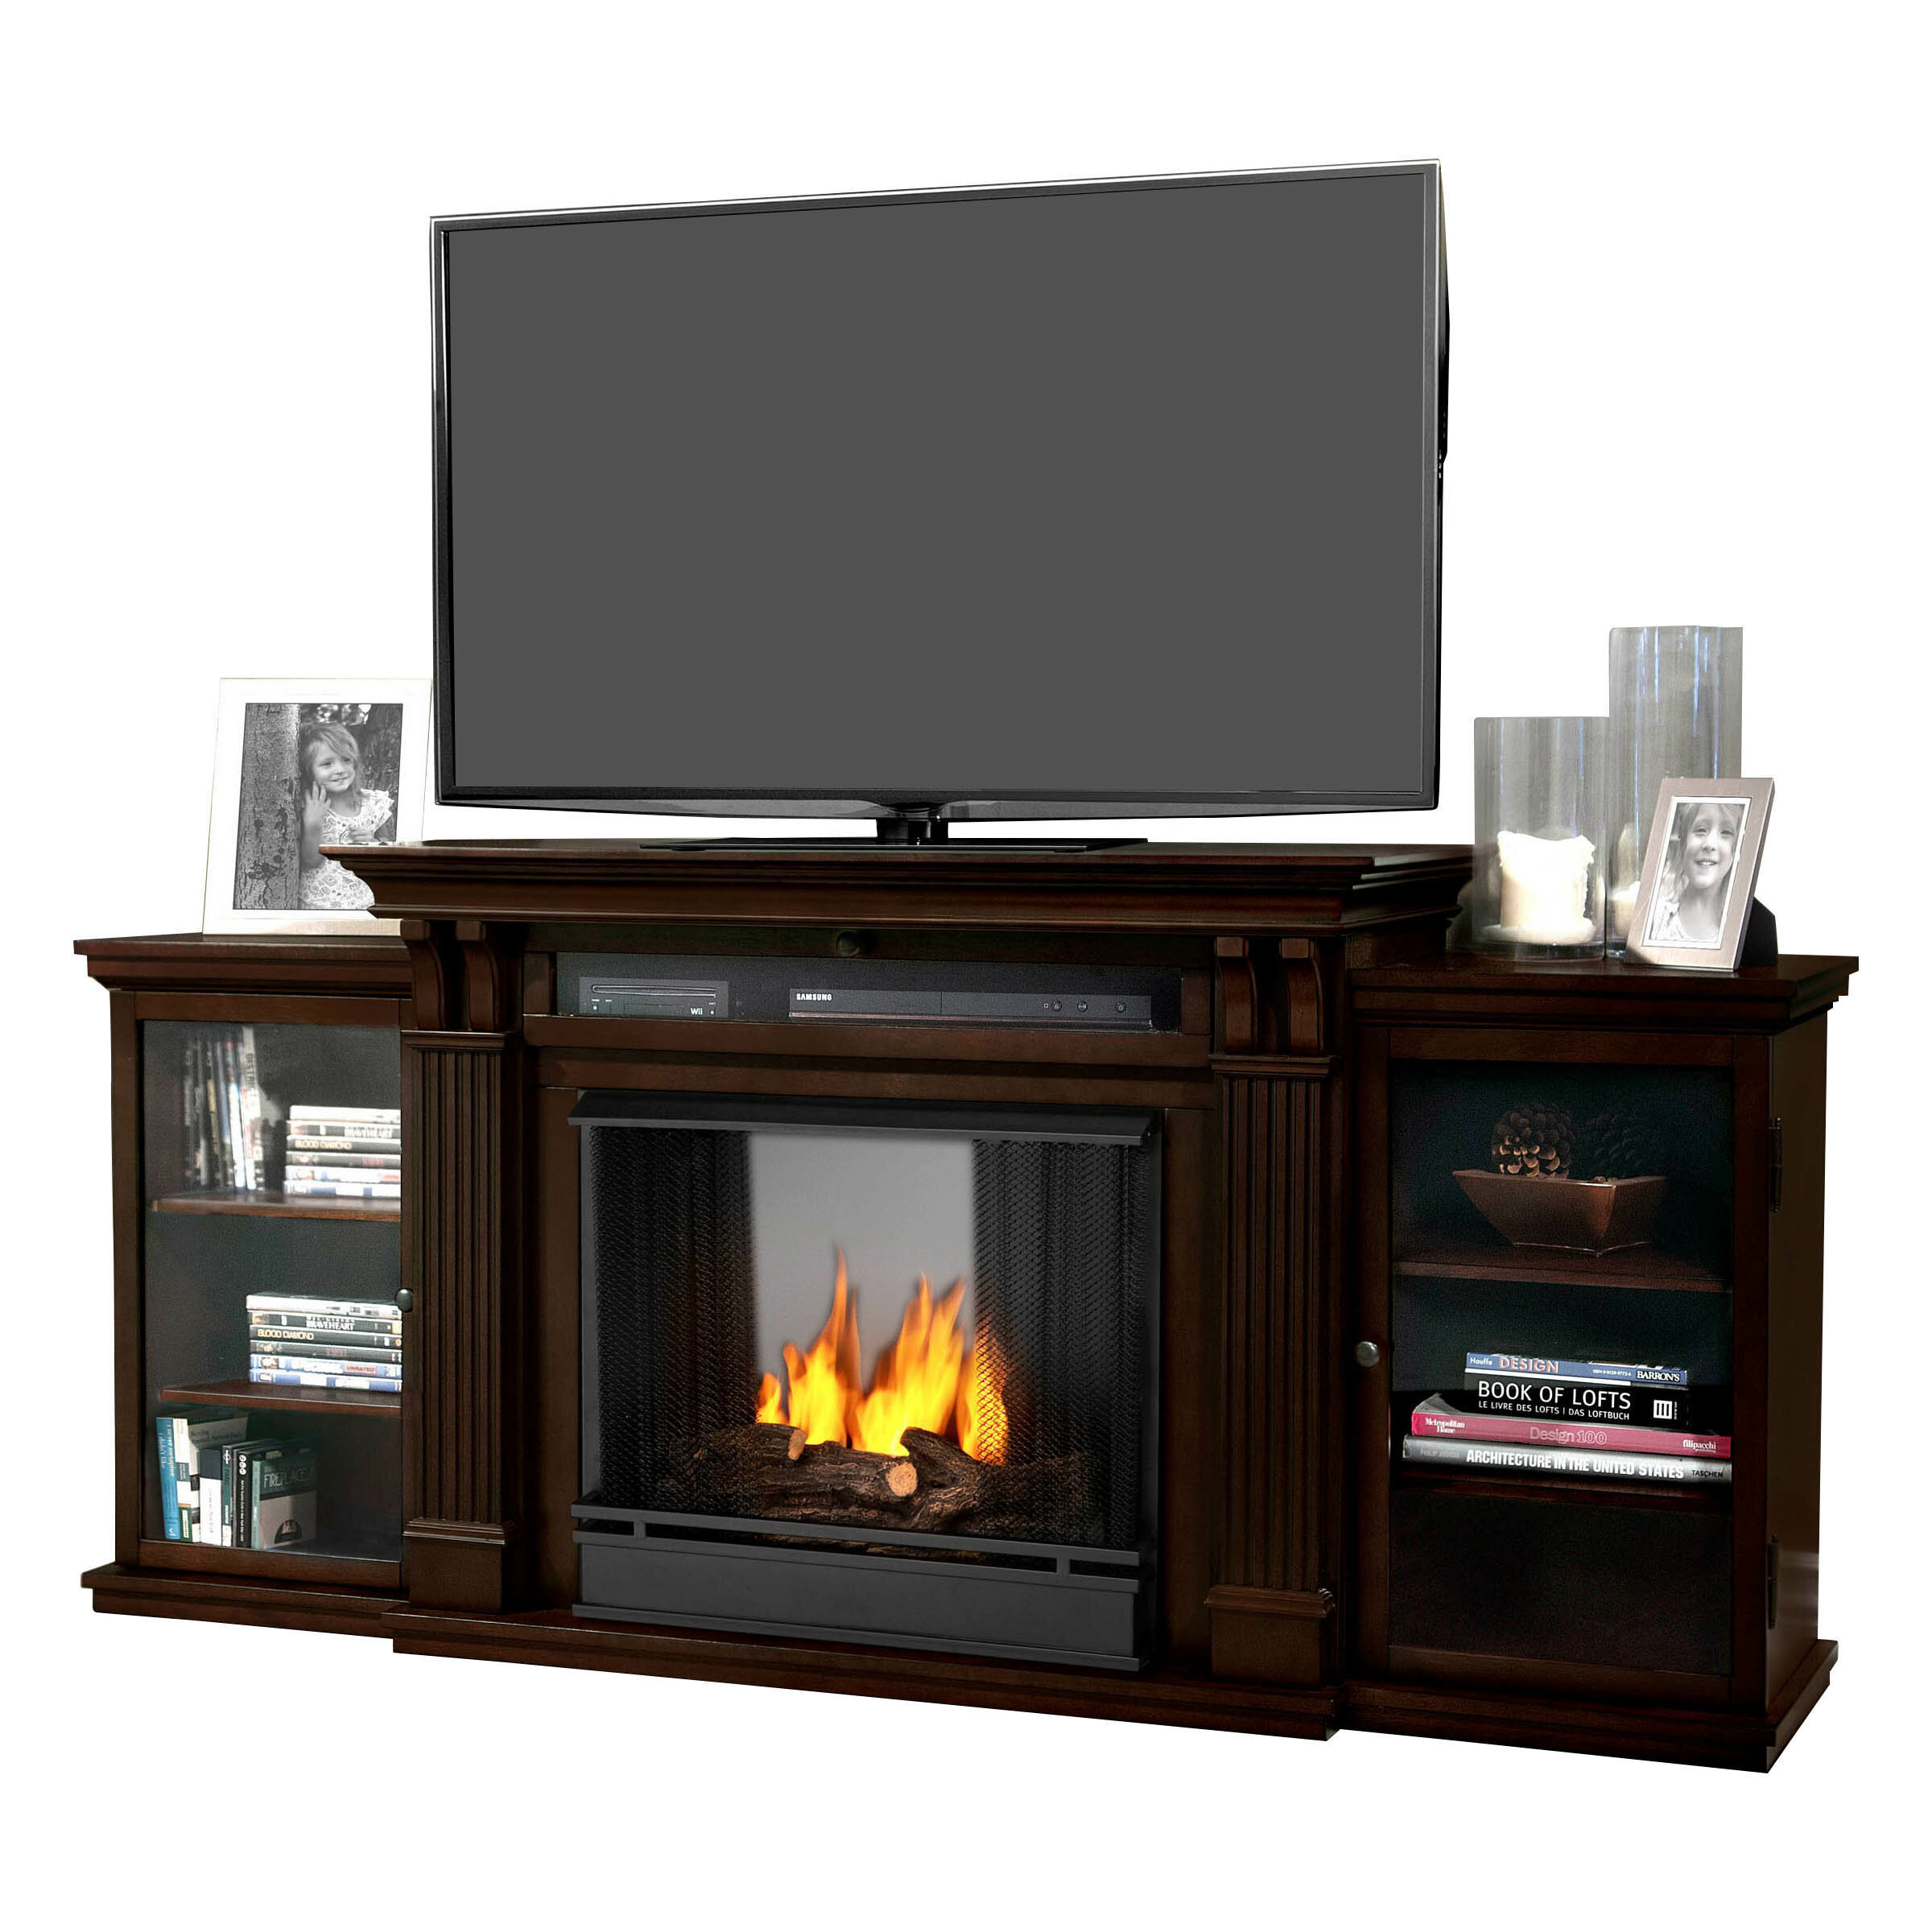 Tv Top Entertainment Center With Electric Fireplace Linear